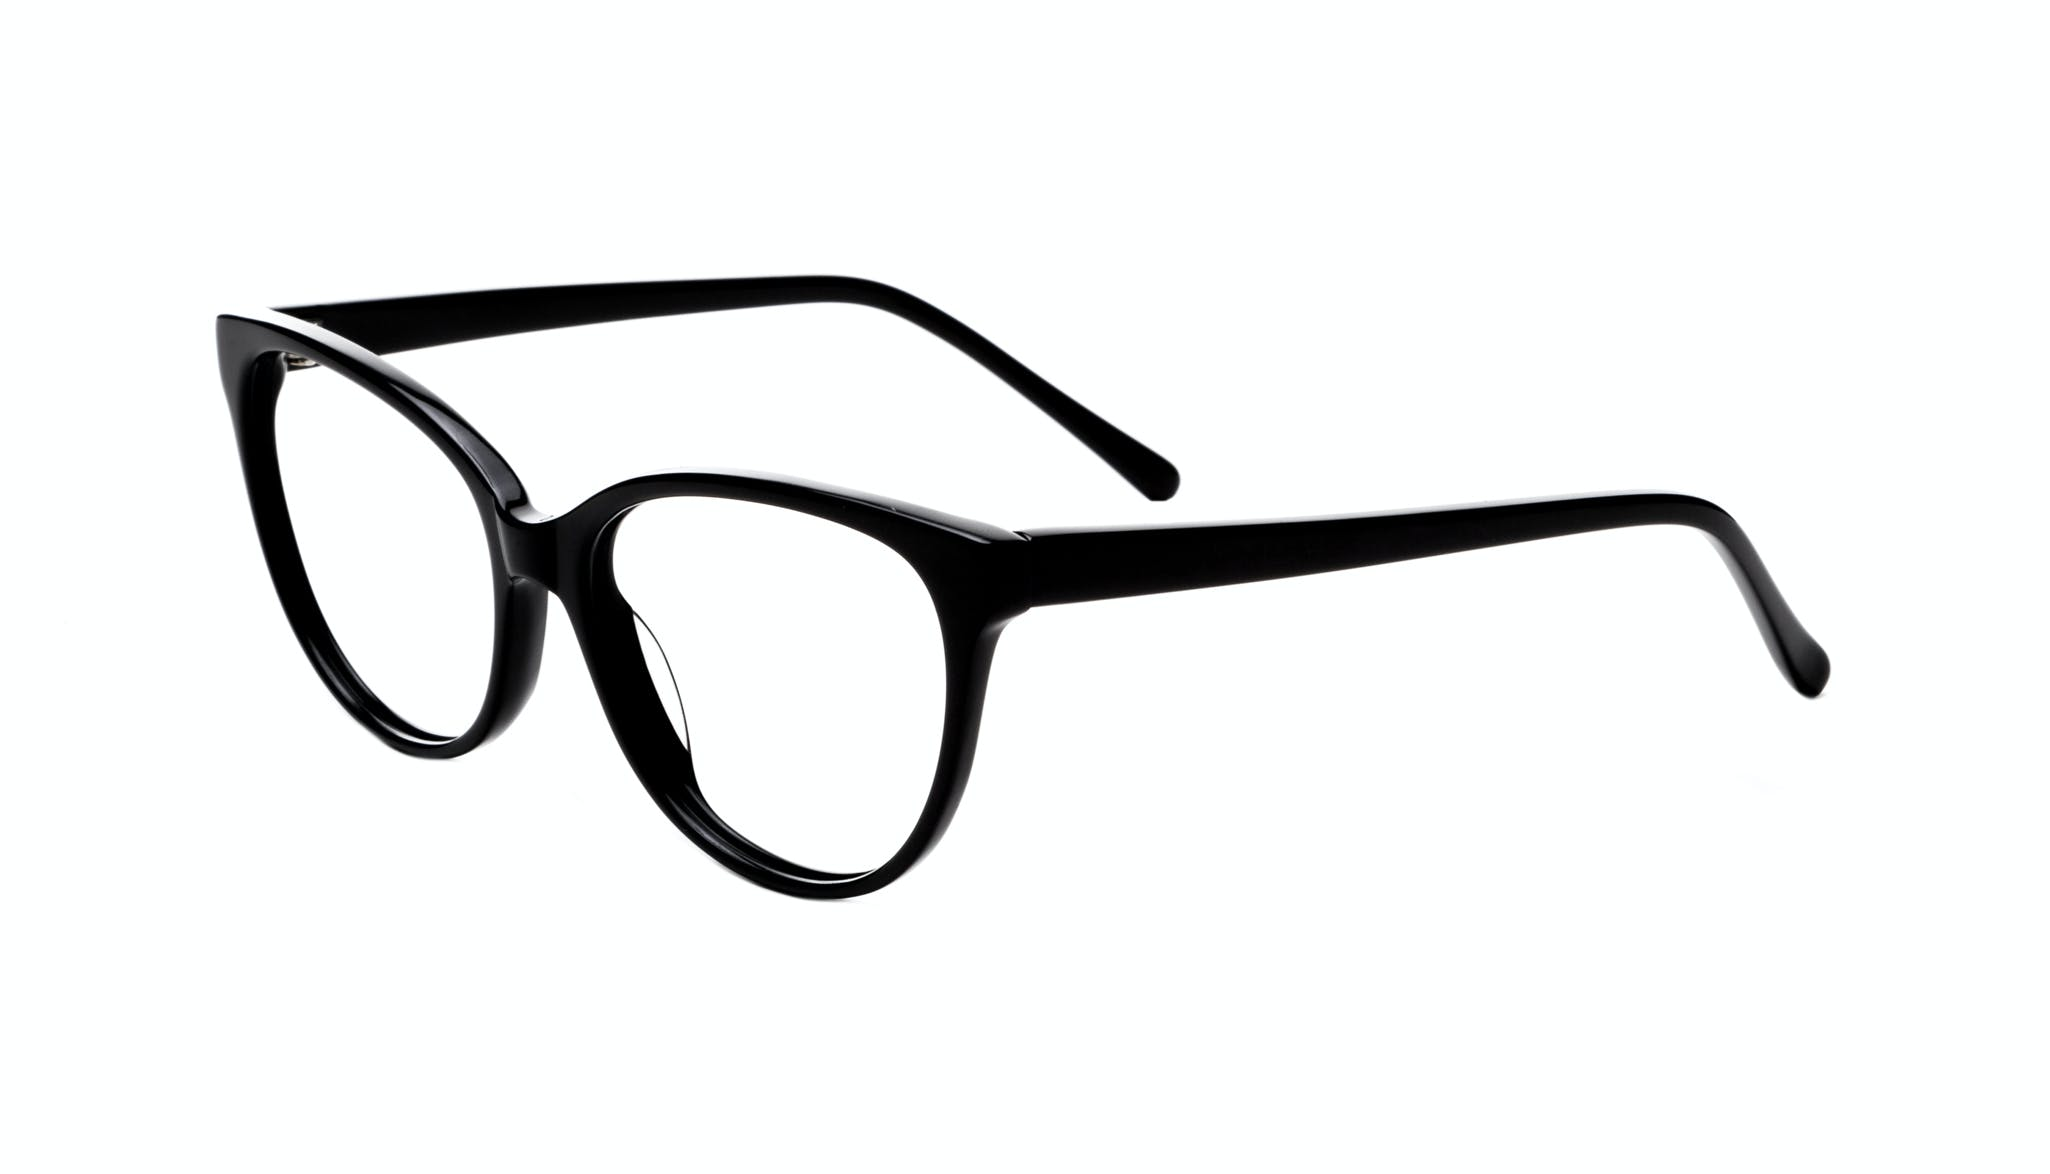 Affordable Fashion Glasses Round Eyeglasses Women Imagine Onyx Tilt